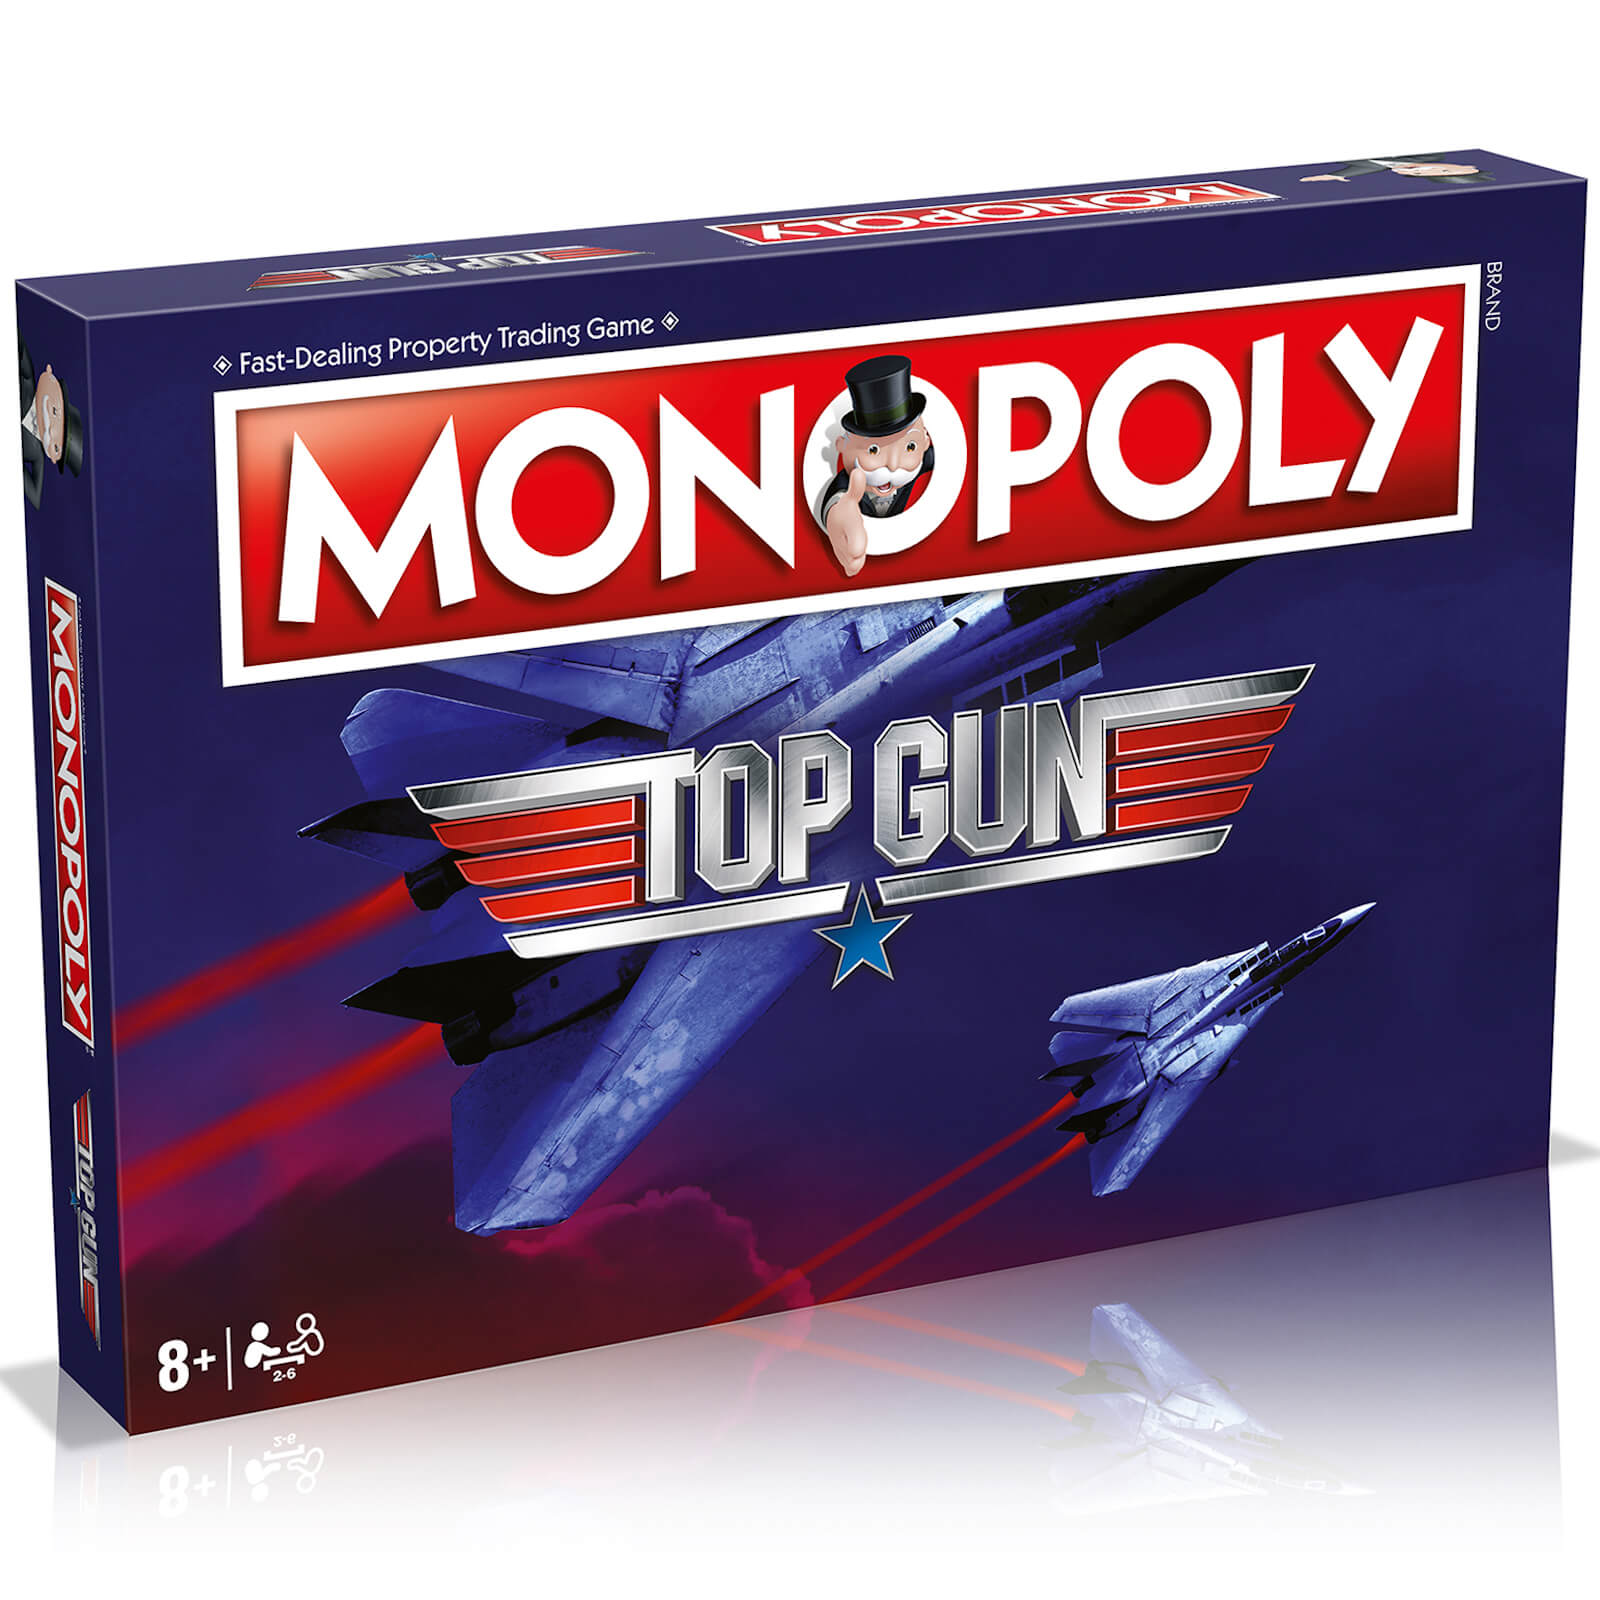 Image of Monopoly Board Game - Top Gun Edition